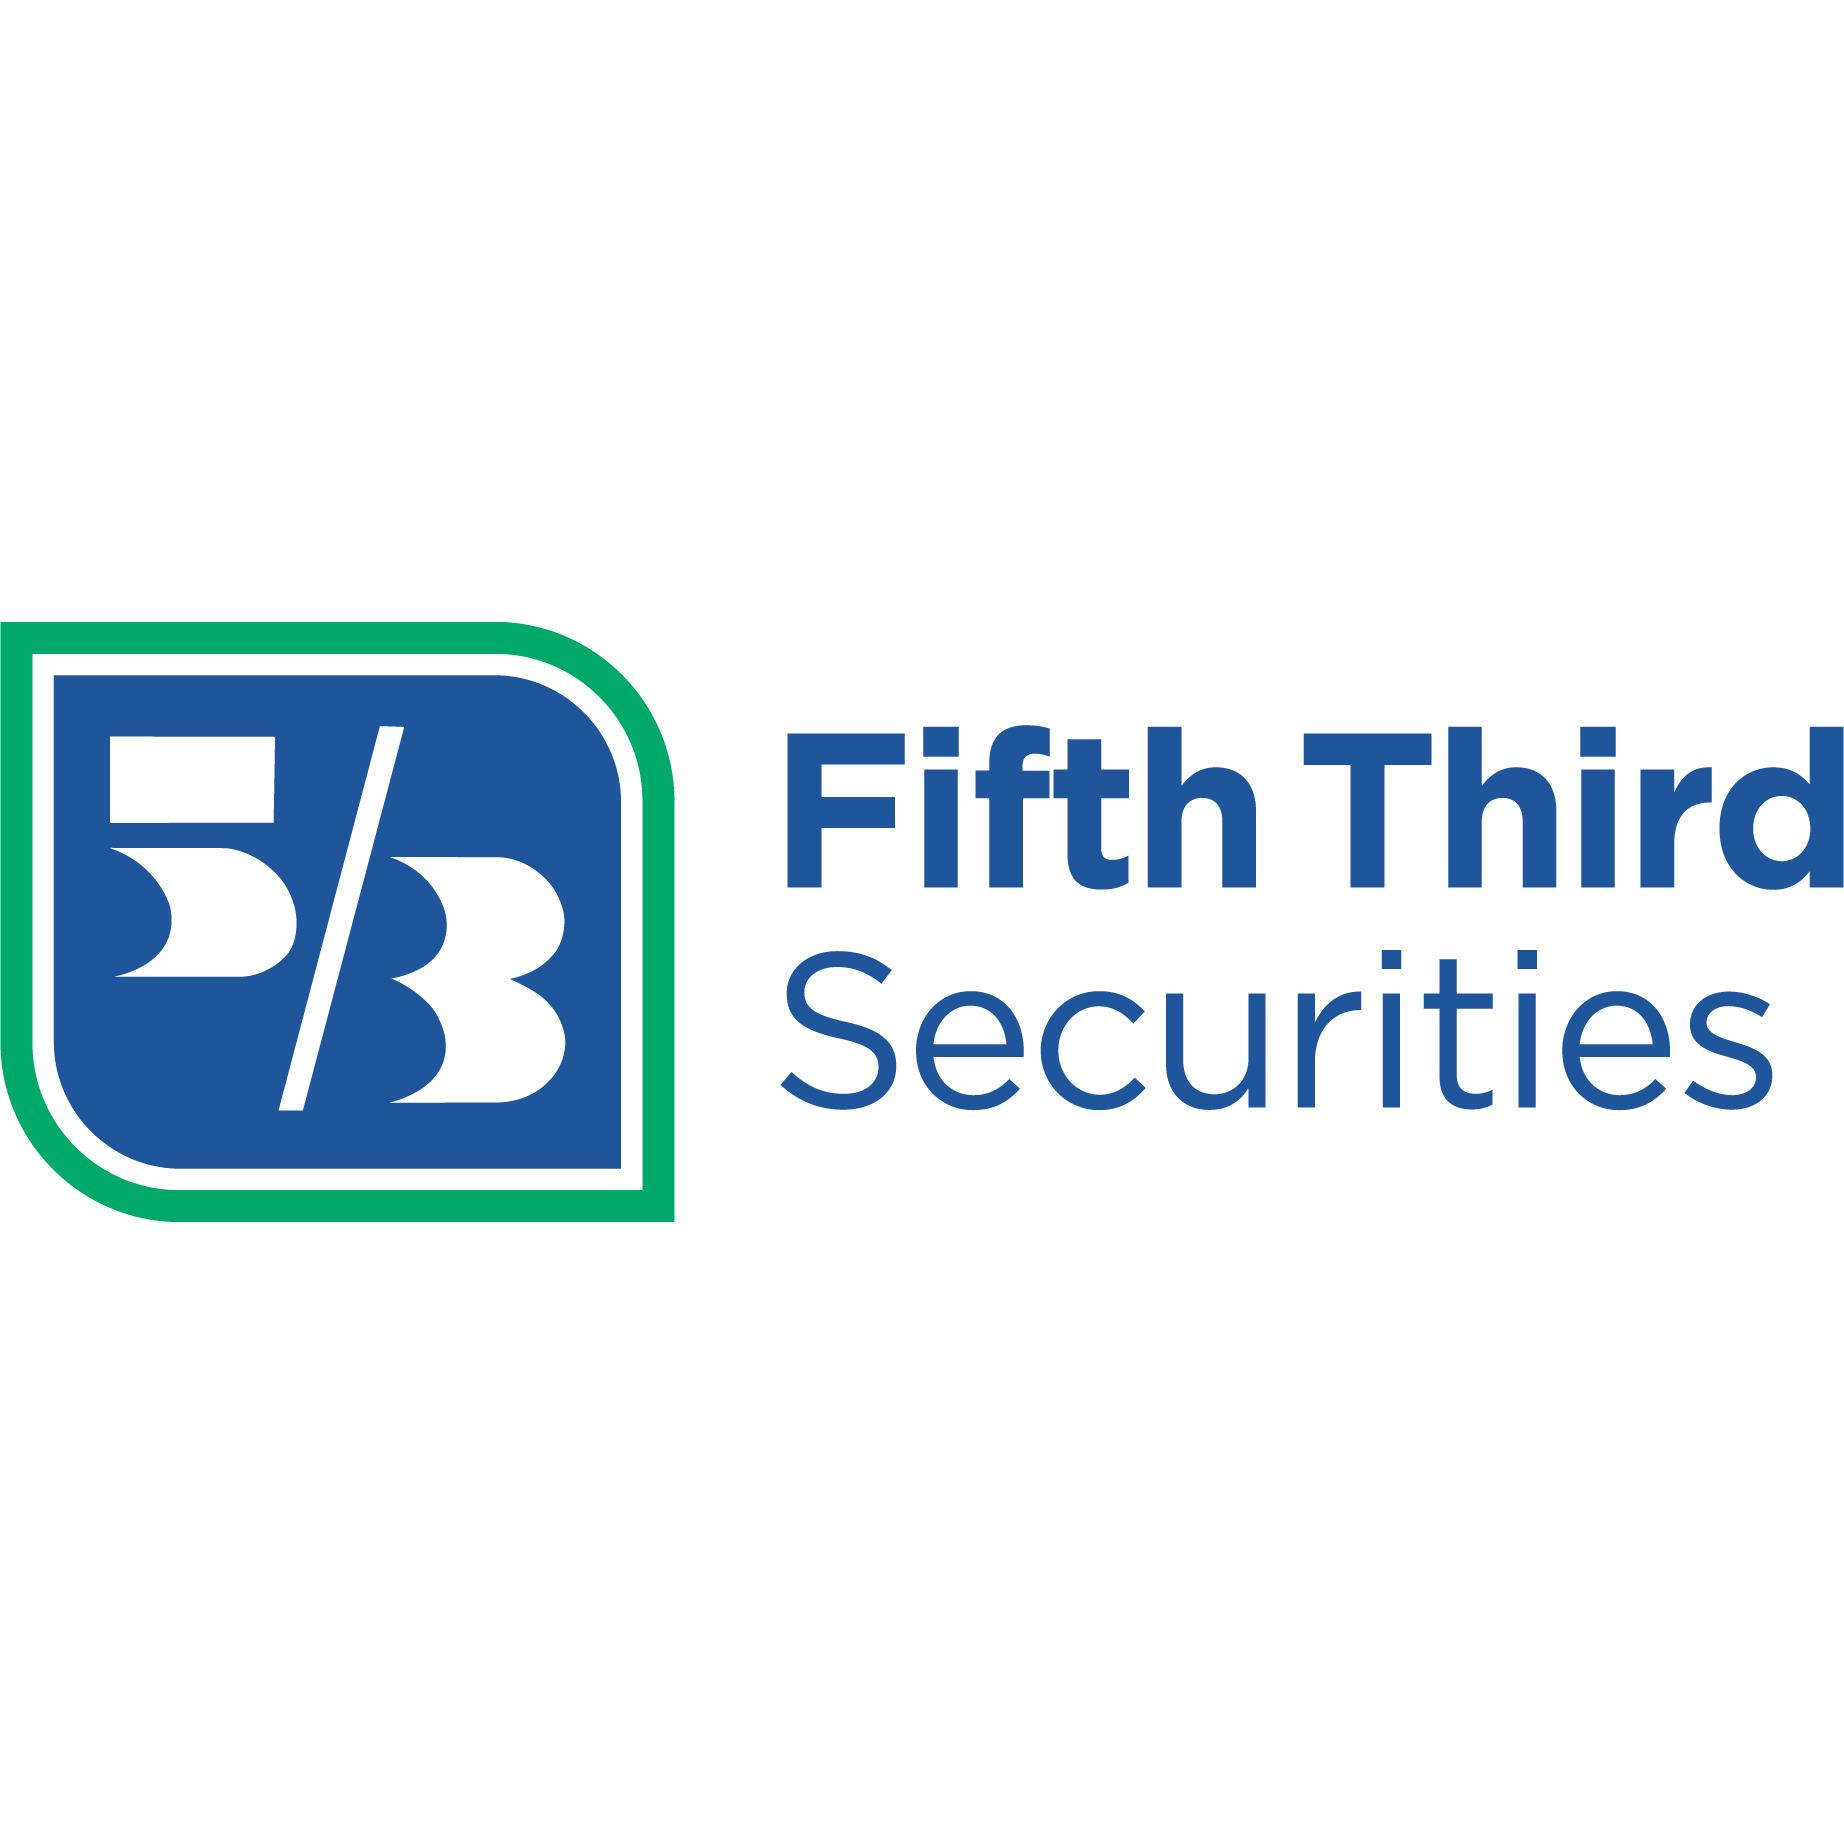 Fifth Third Securities - Joel Van Belkom